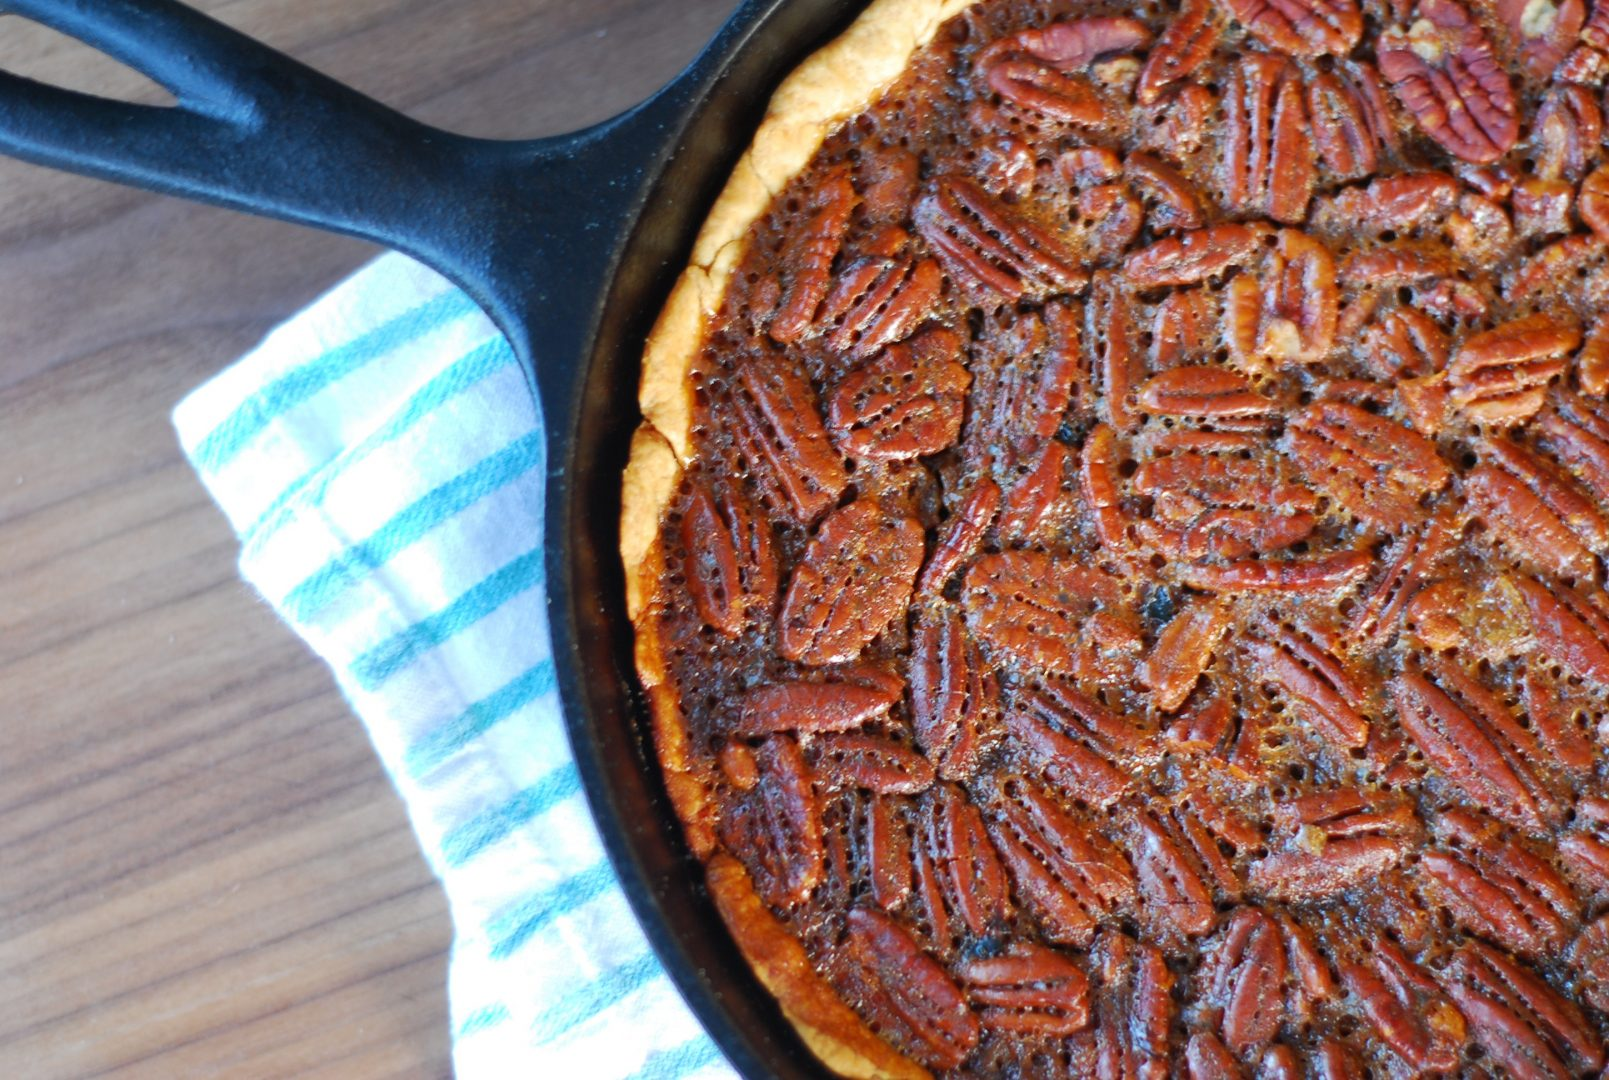 Bourbon and smoked pecan pie_smoked pecan pie